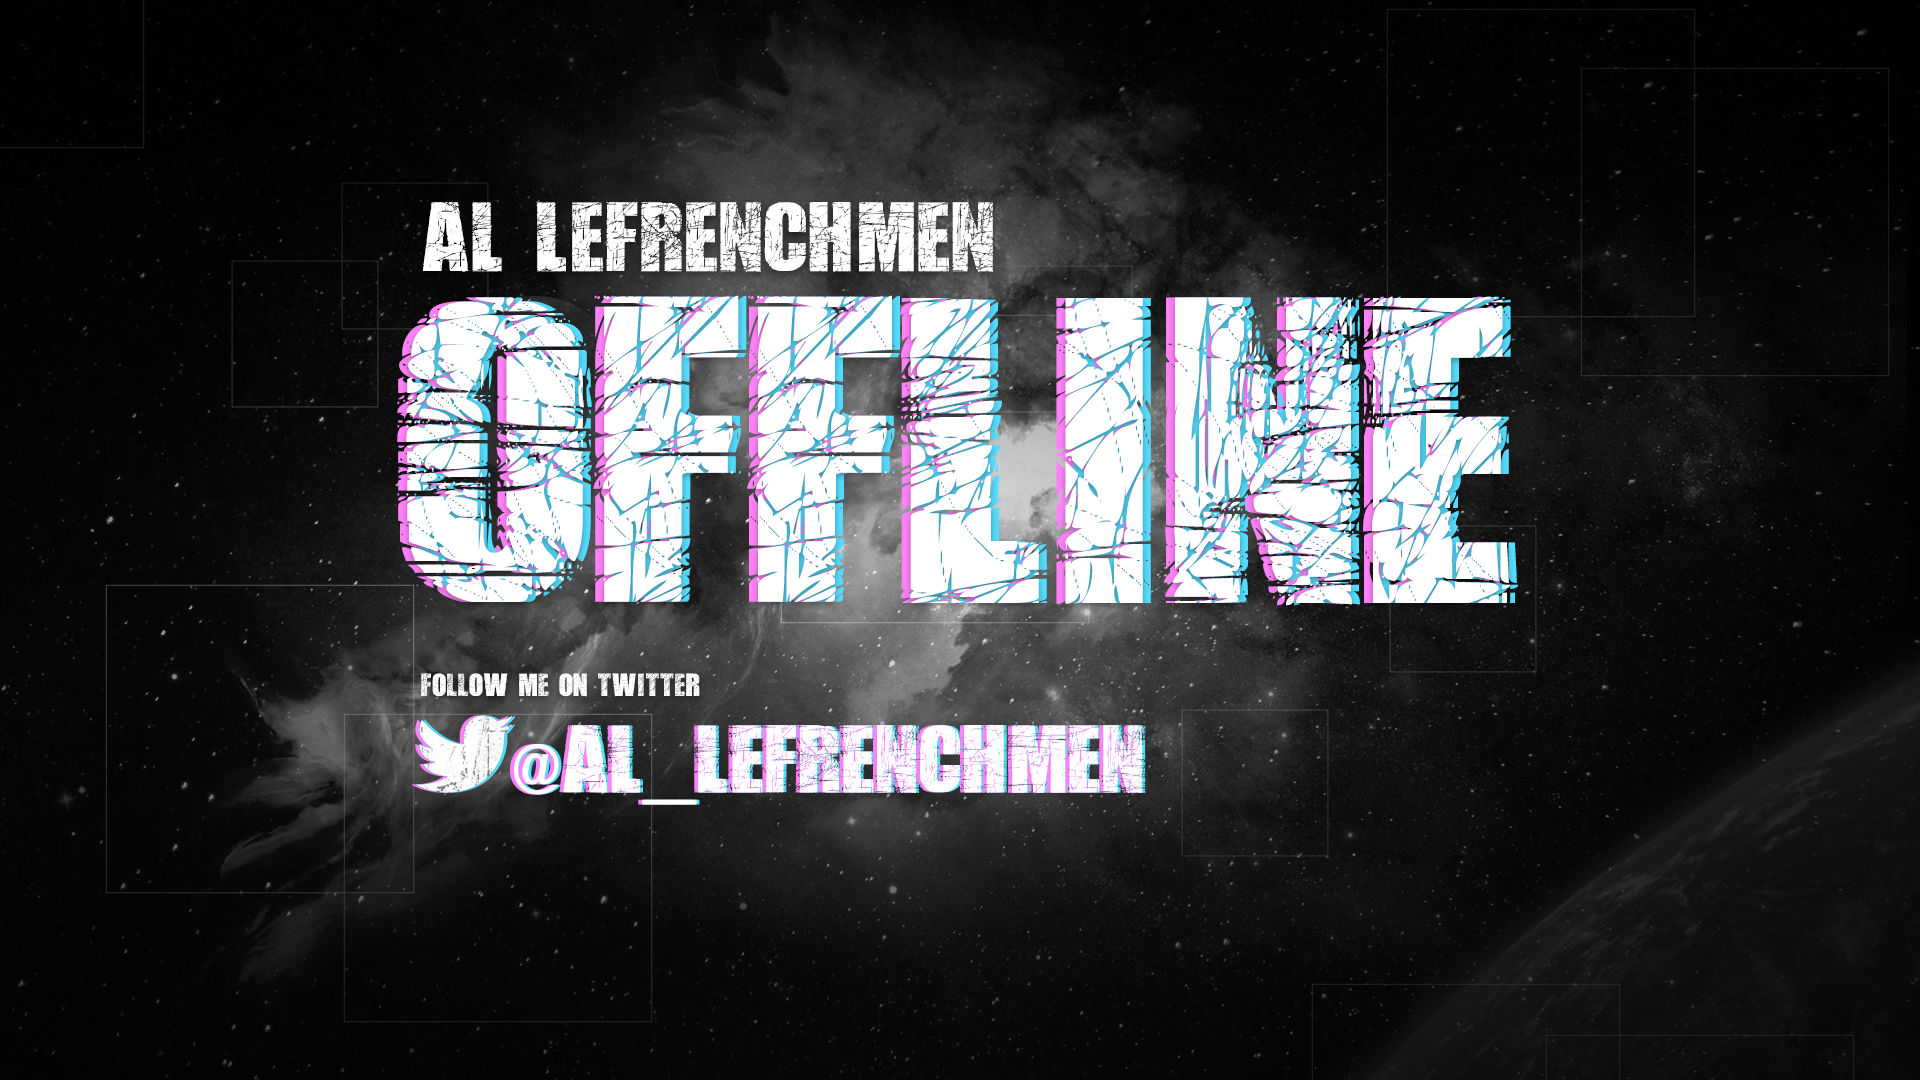 Al_lefrenchmen twitch offline screen.png